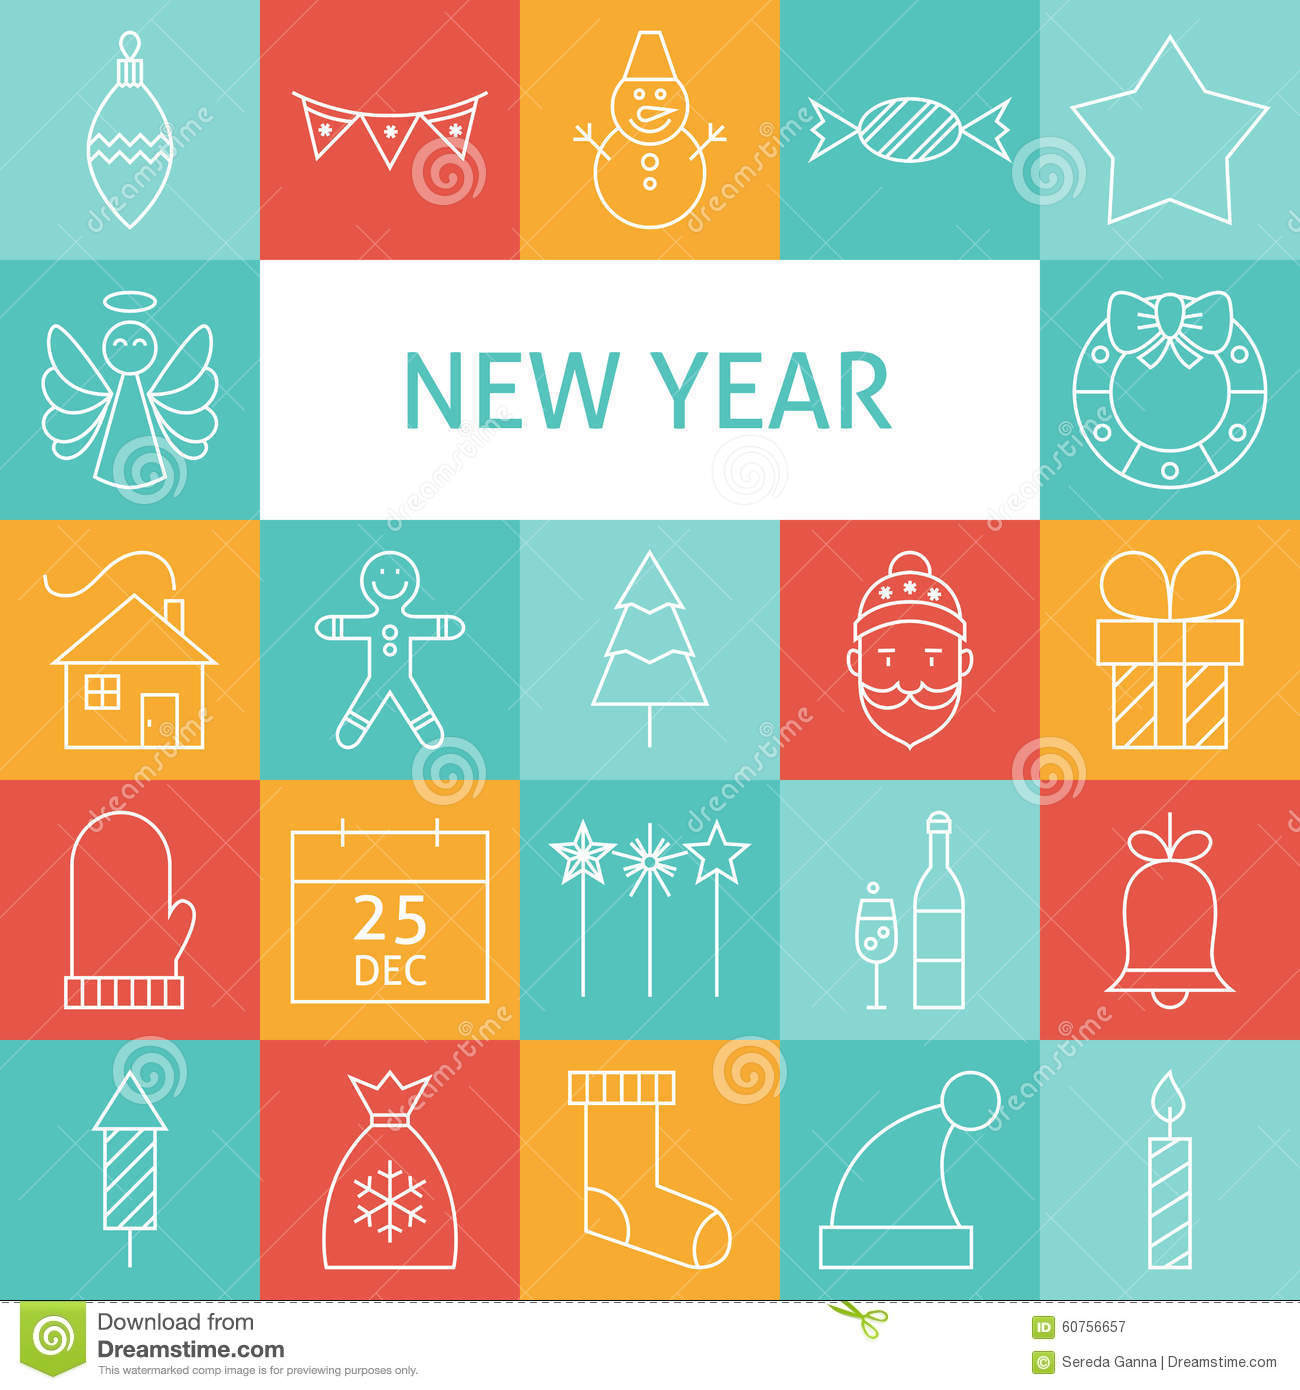 New Year S Line Art : Vector line art modern happy new year holiday icons set